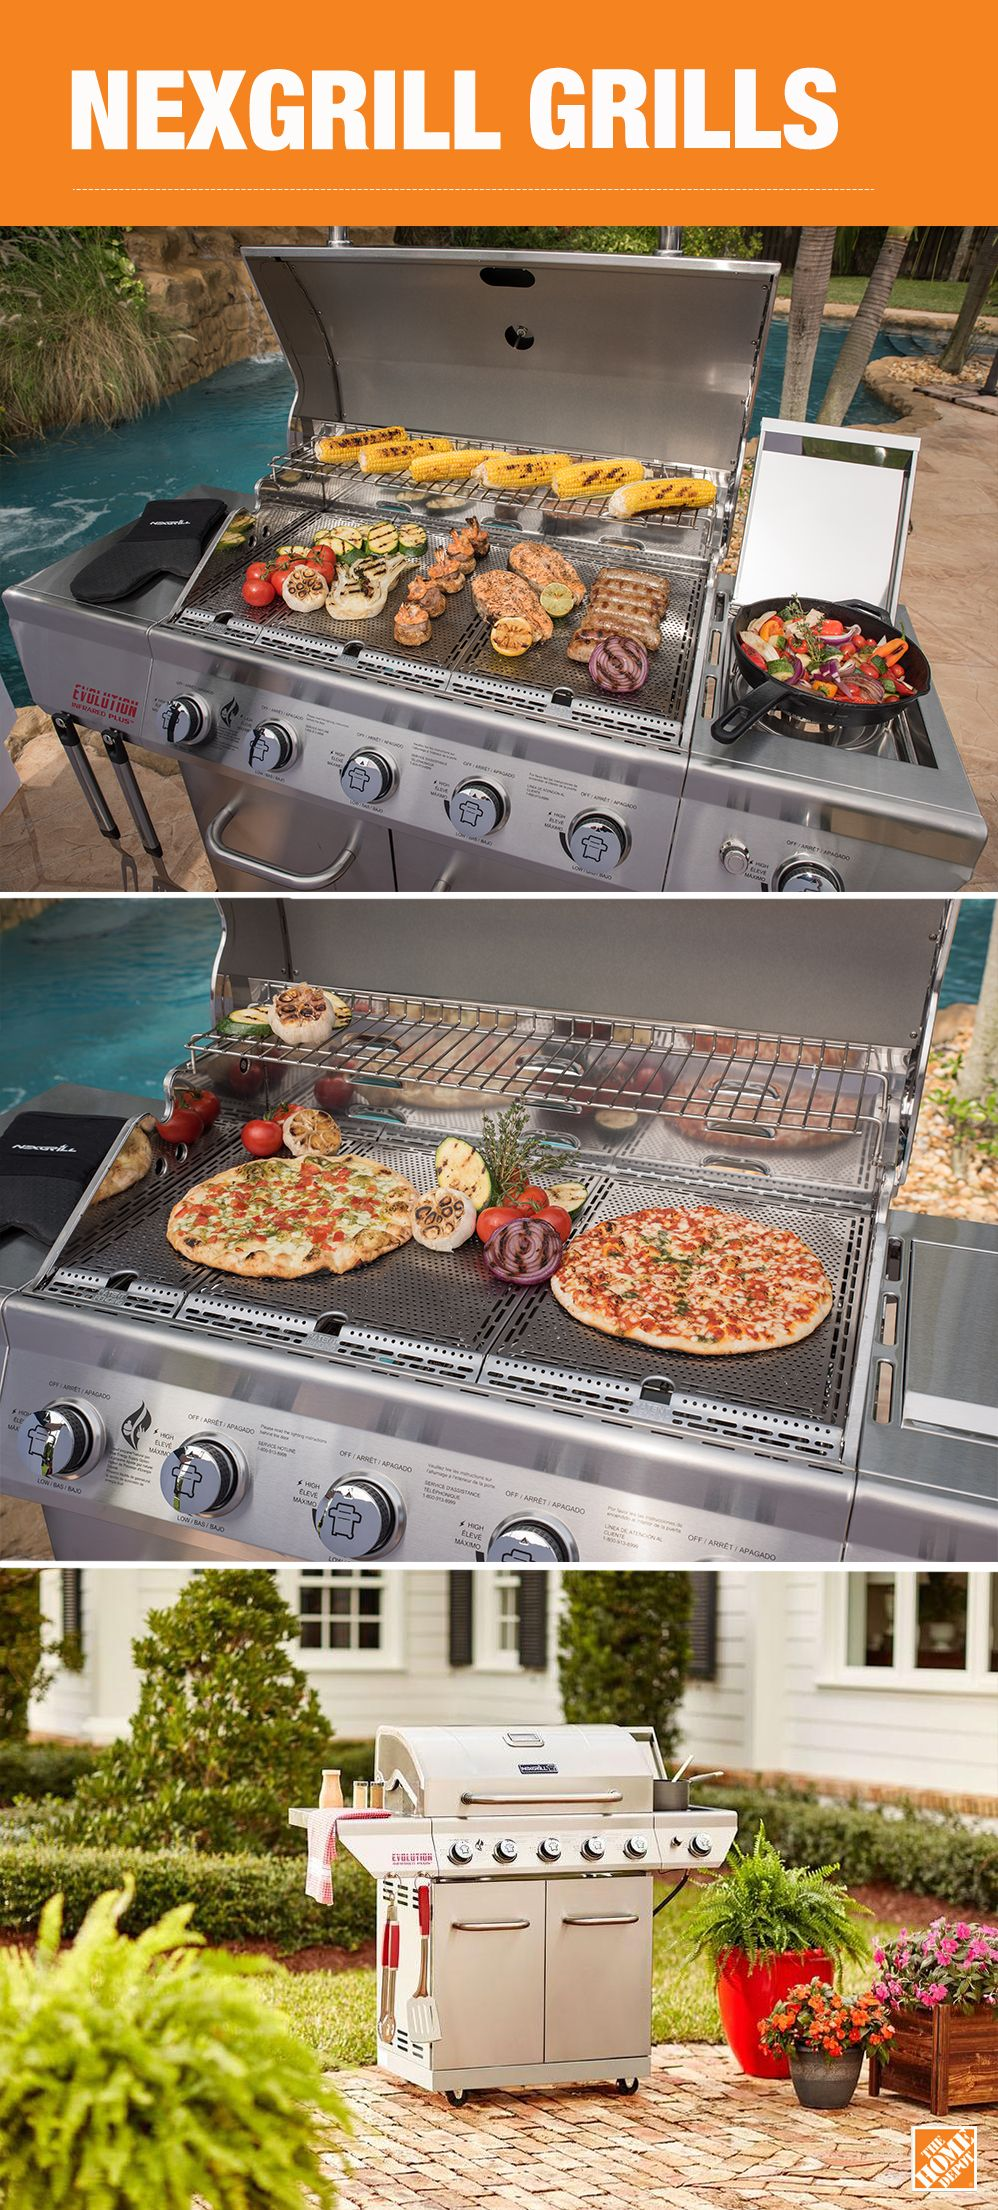 17 Best images about Grilling on Pinterest